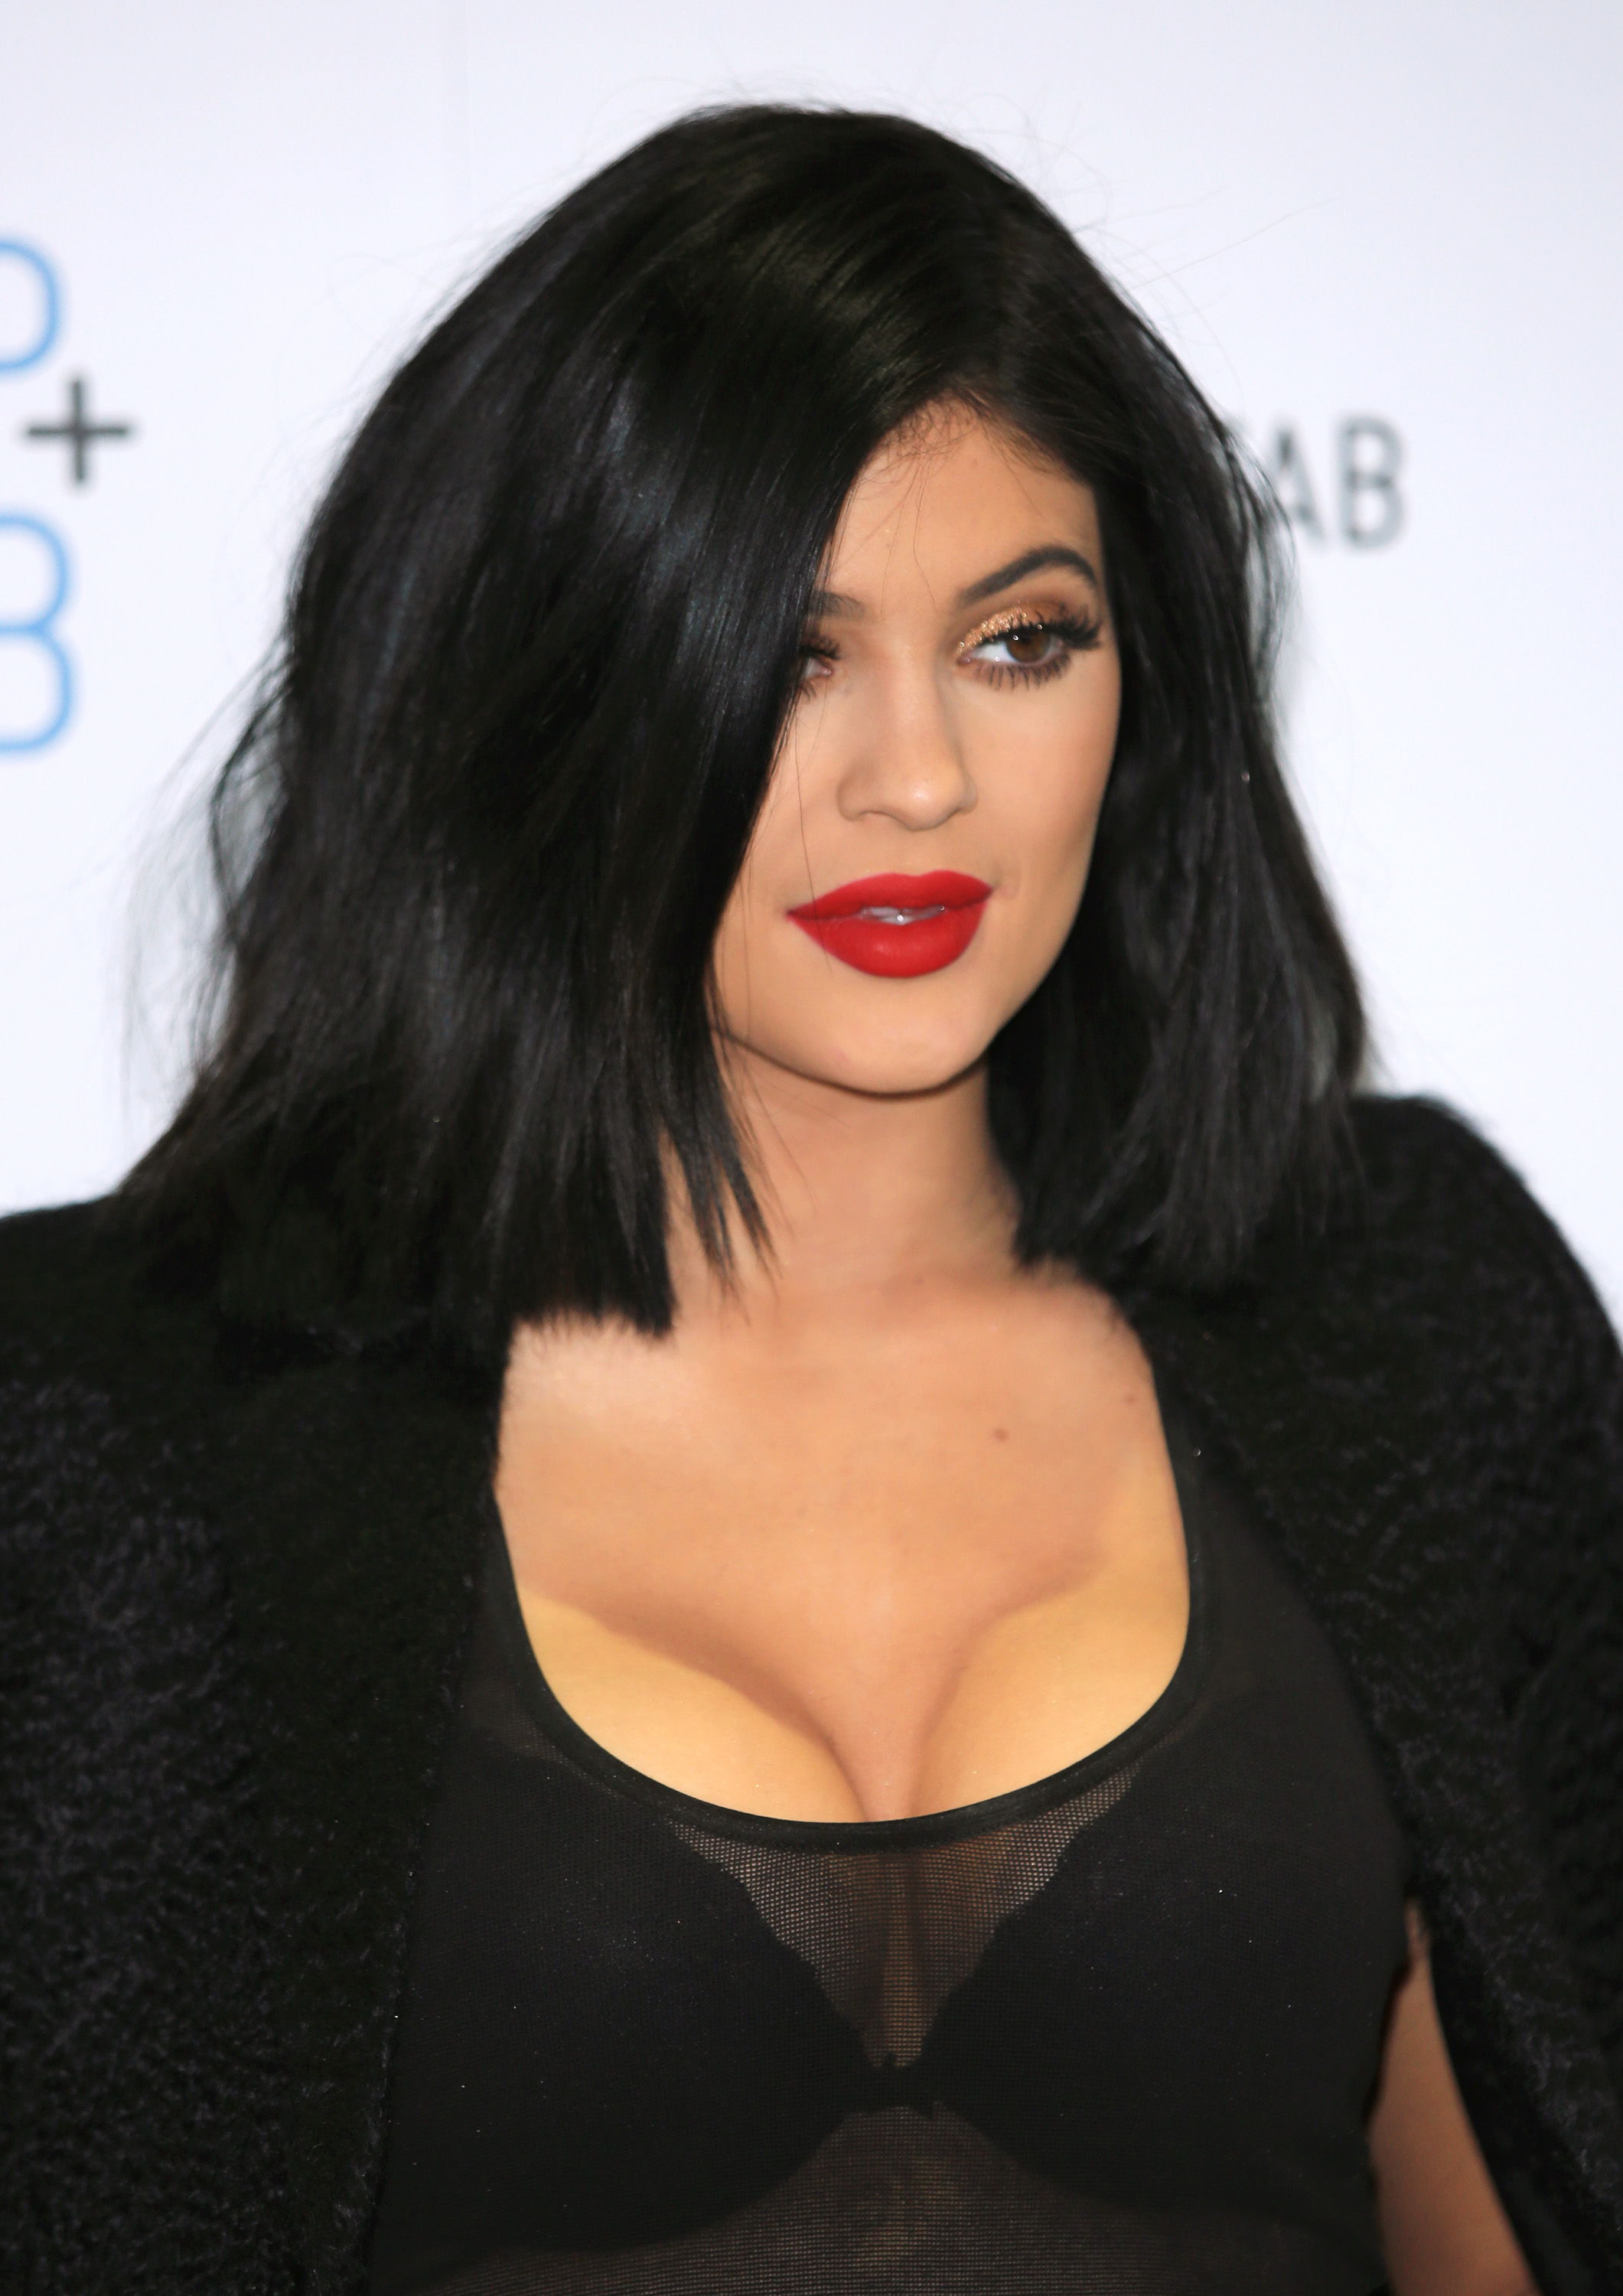 Kylie Jenner Suffers Makeup Mishap With Cleavage Contouring